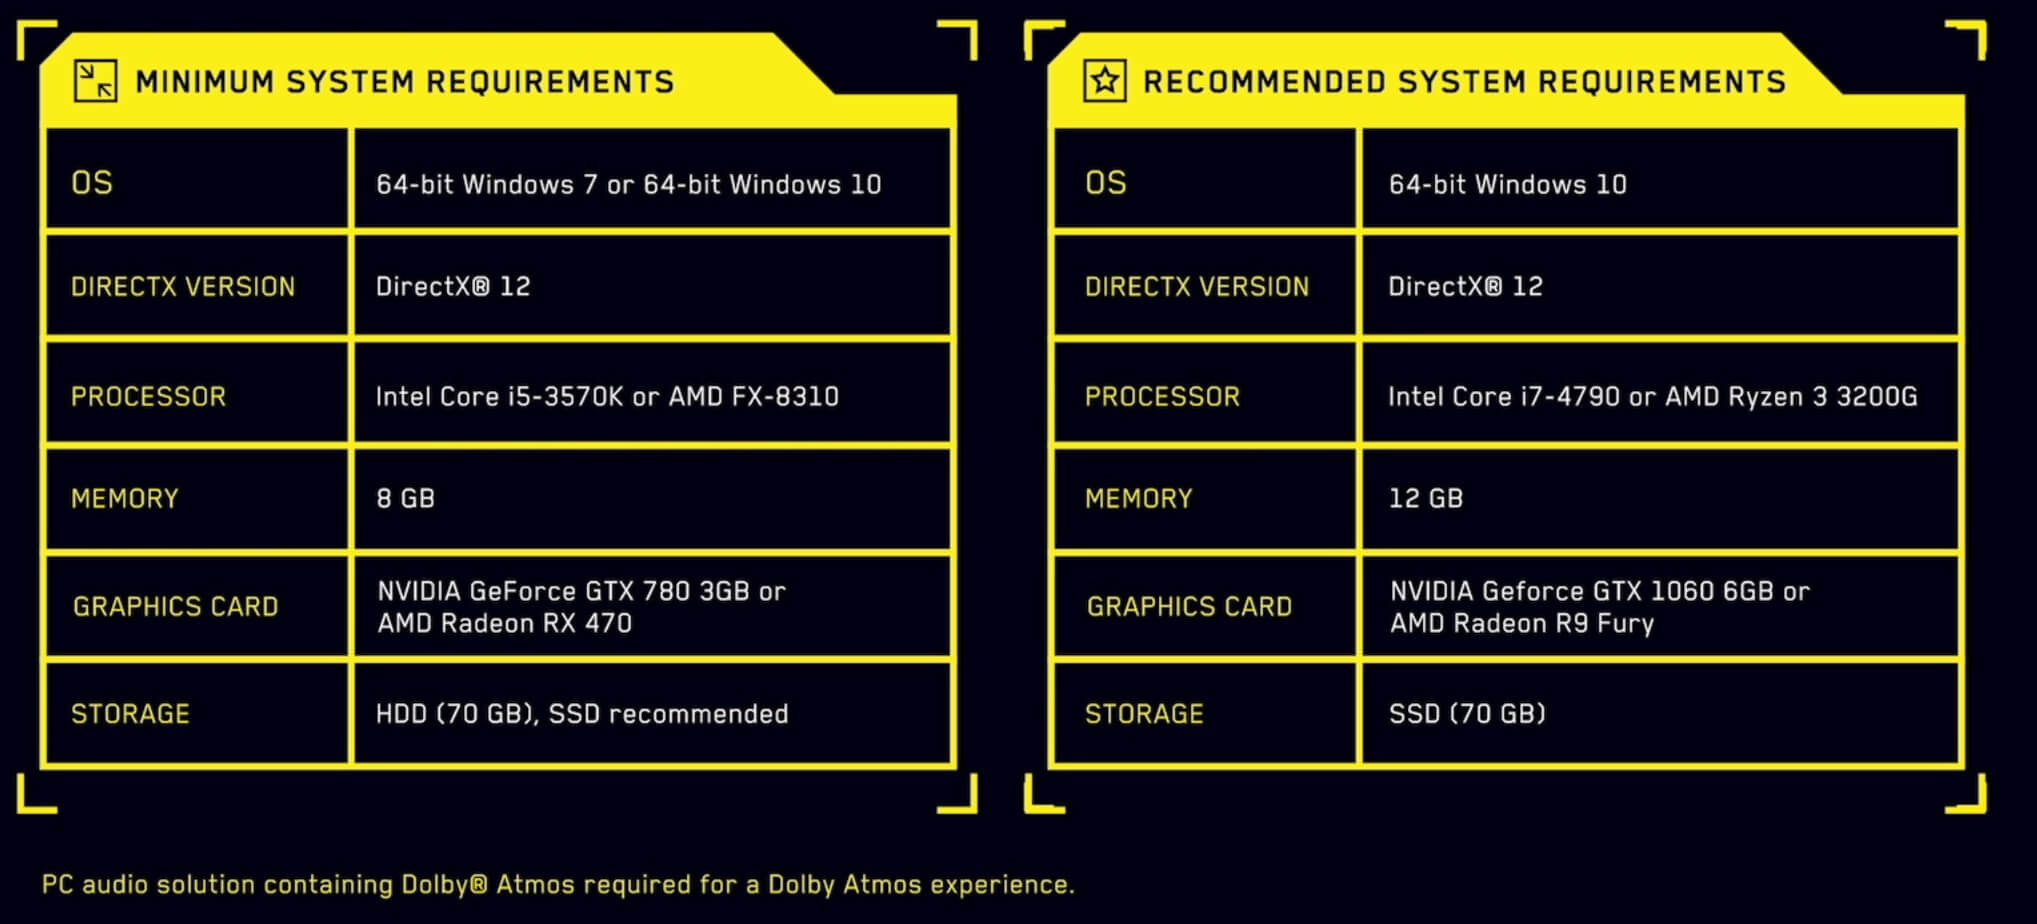 Cyberpunk 2077 Official PC System Requirements